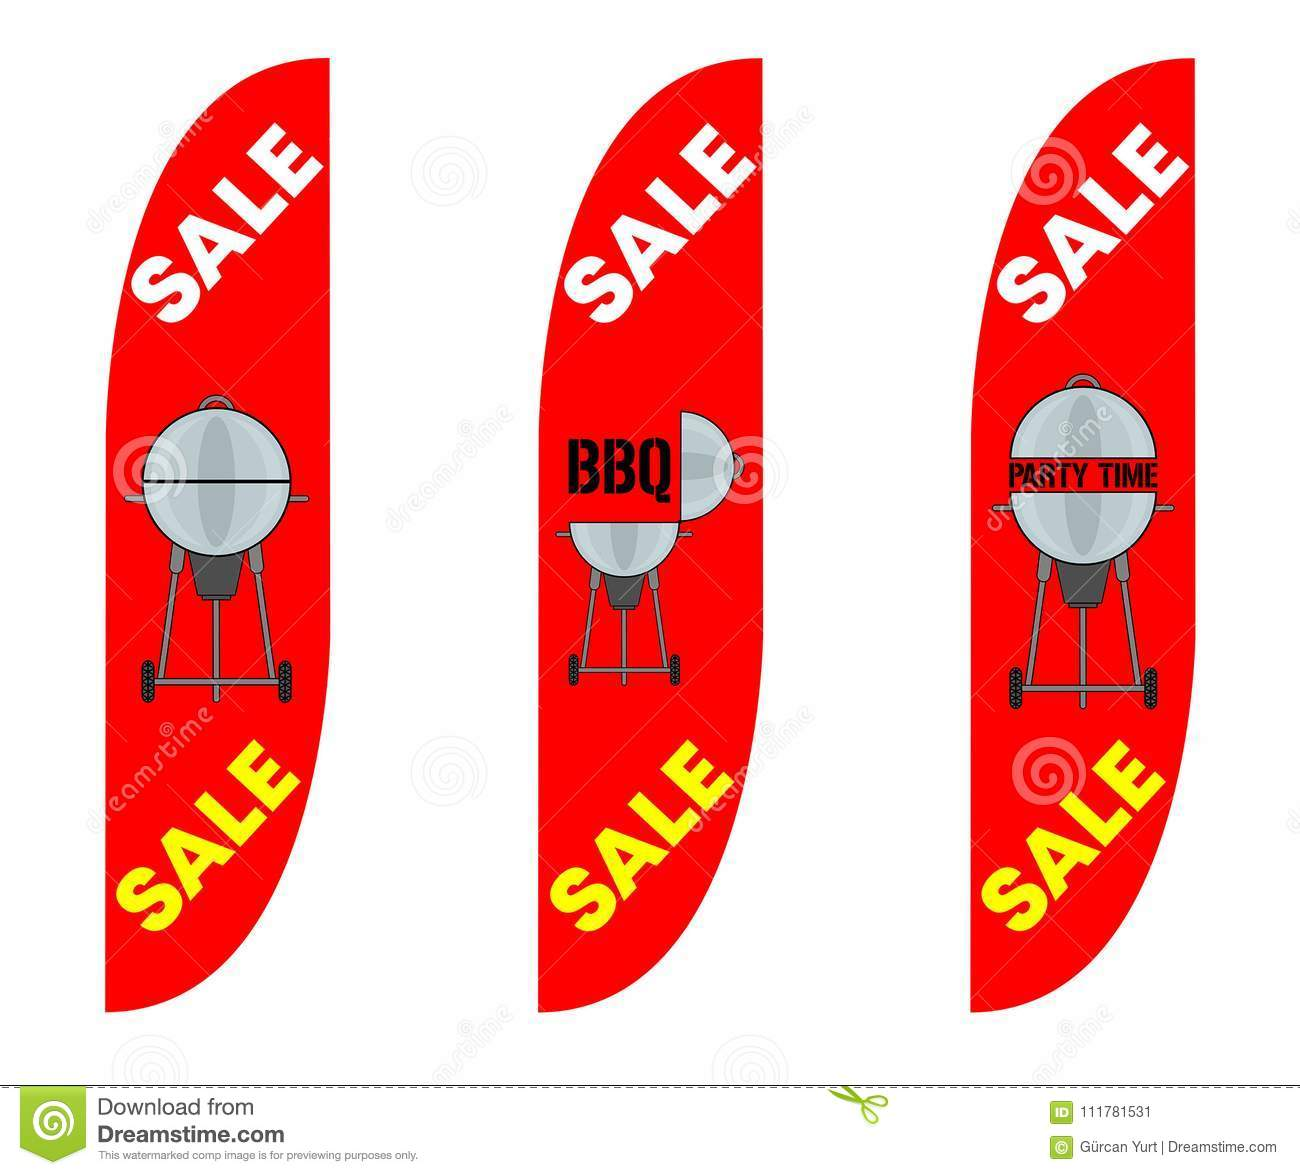 Convex Feather Flags for BBQ Party Sale